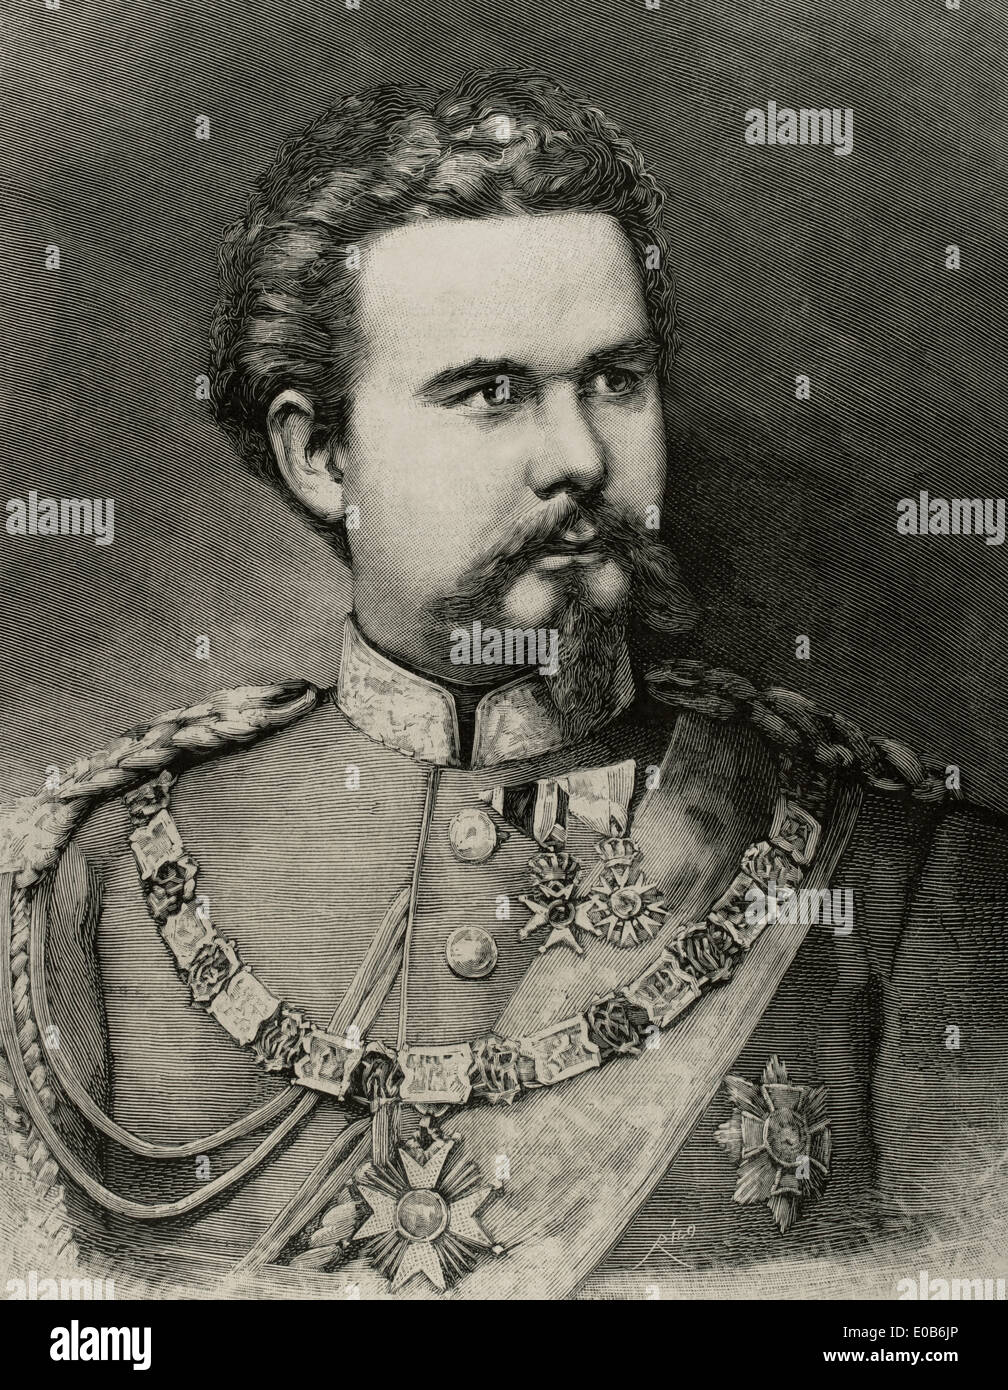 Ludwig II of Bavaria (1845-1886). Engraving by Rico. The Spanish and American Illustration, 1886. - Stock Image